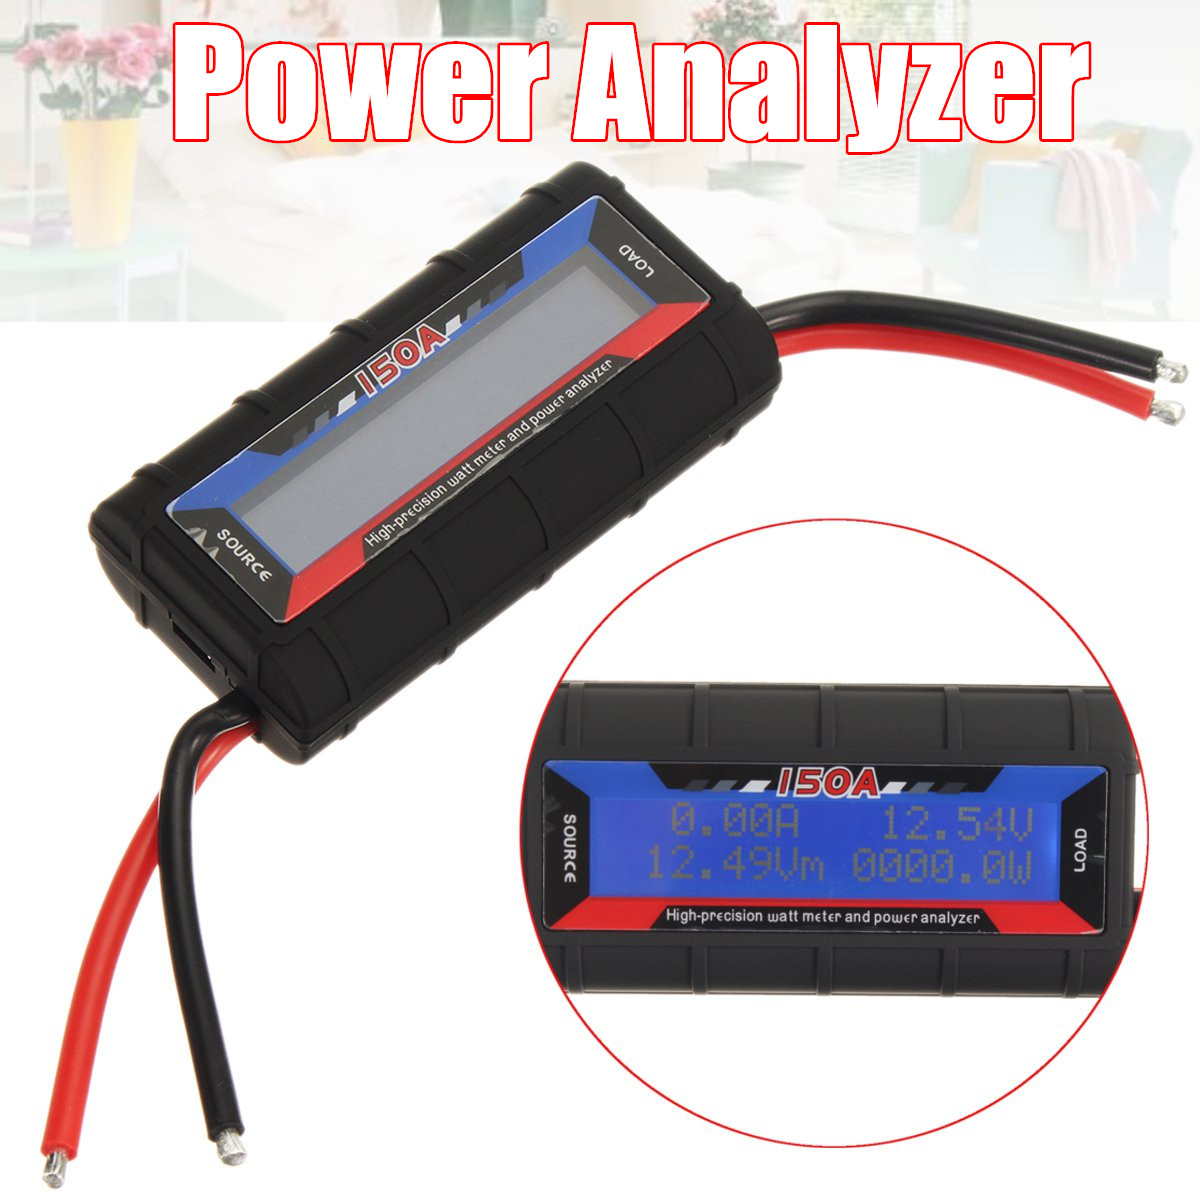 Power Watt Amp Meter for Wind or Solar 150amp Power Analyser Heavy Duty Type